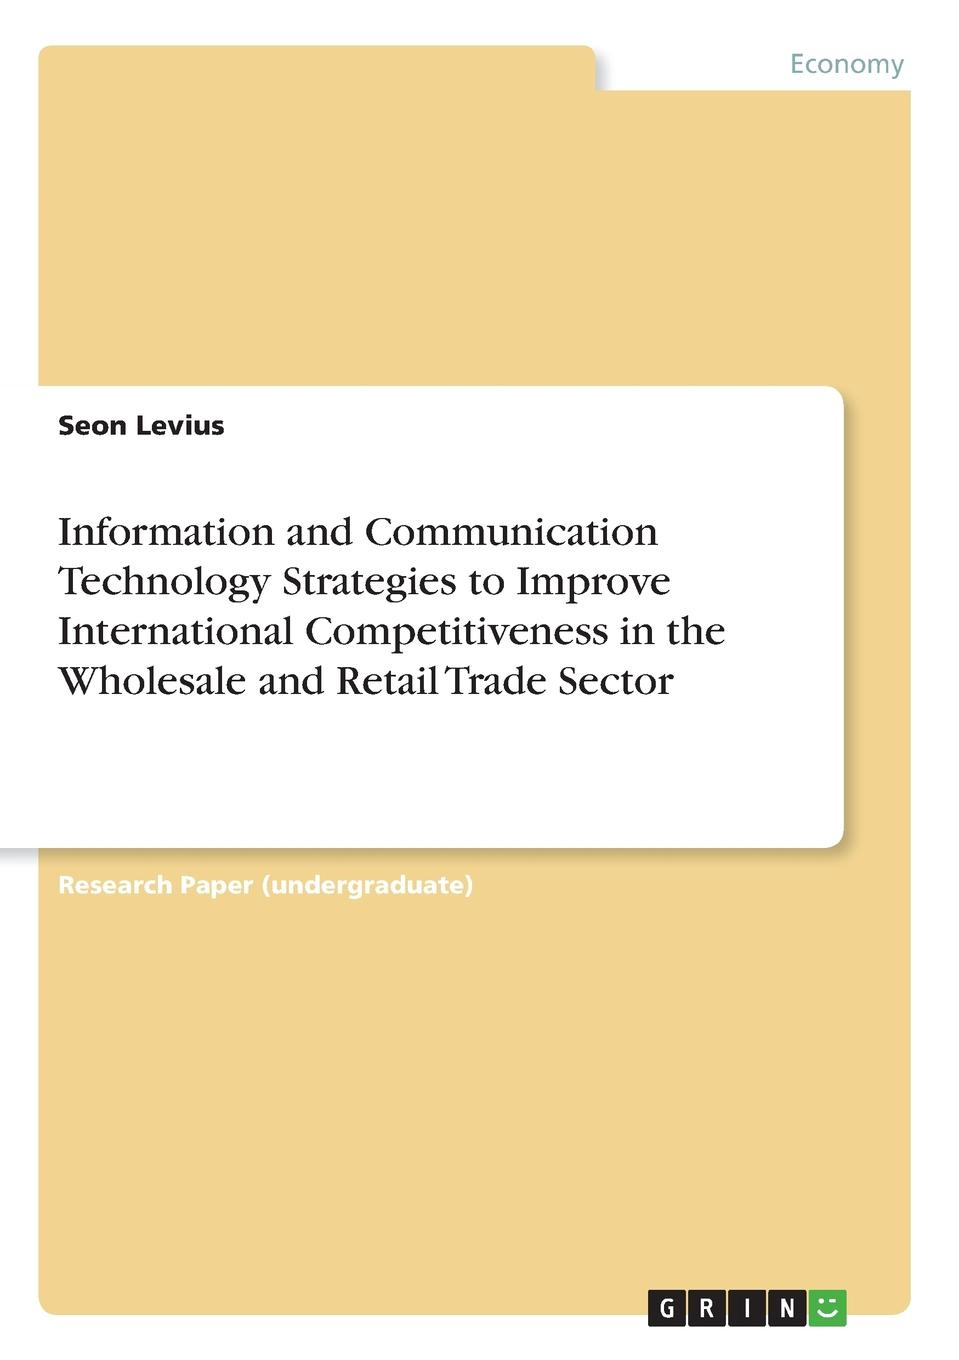 Seon Levius Information and Communication Technology Strategies to Improve International Competitiveness in the Wholesale and Retail Trade Sector teemzone wholesale